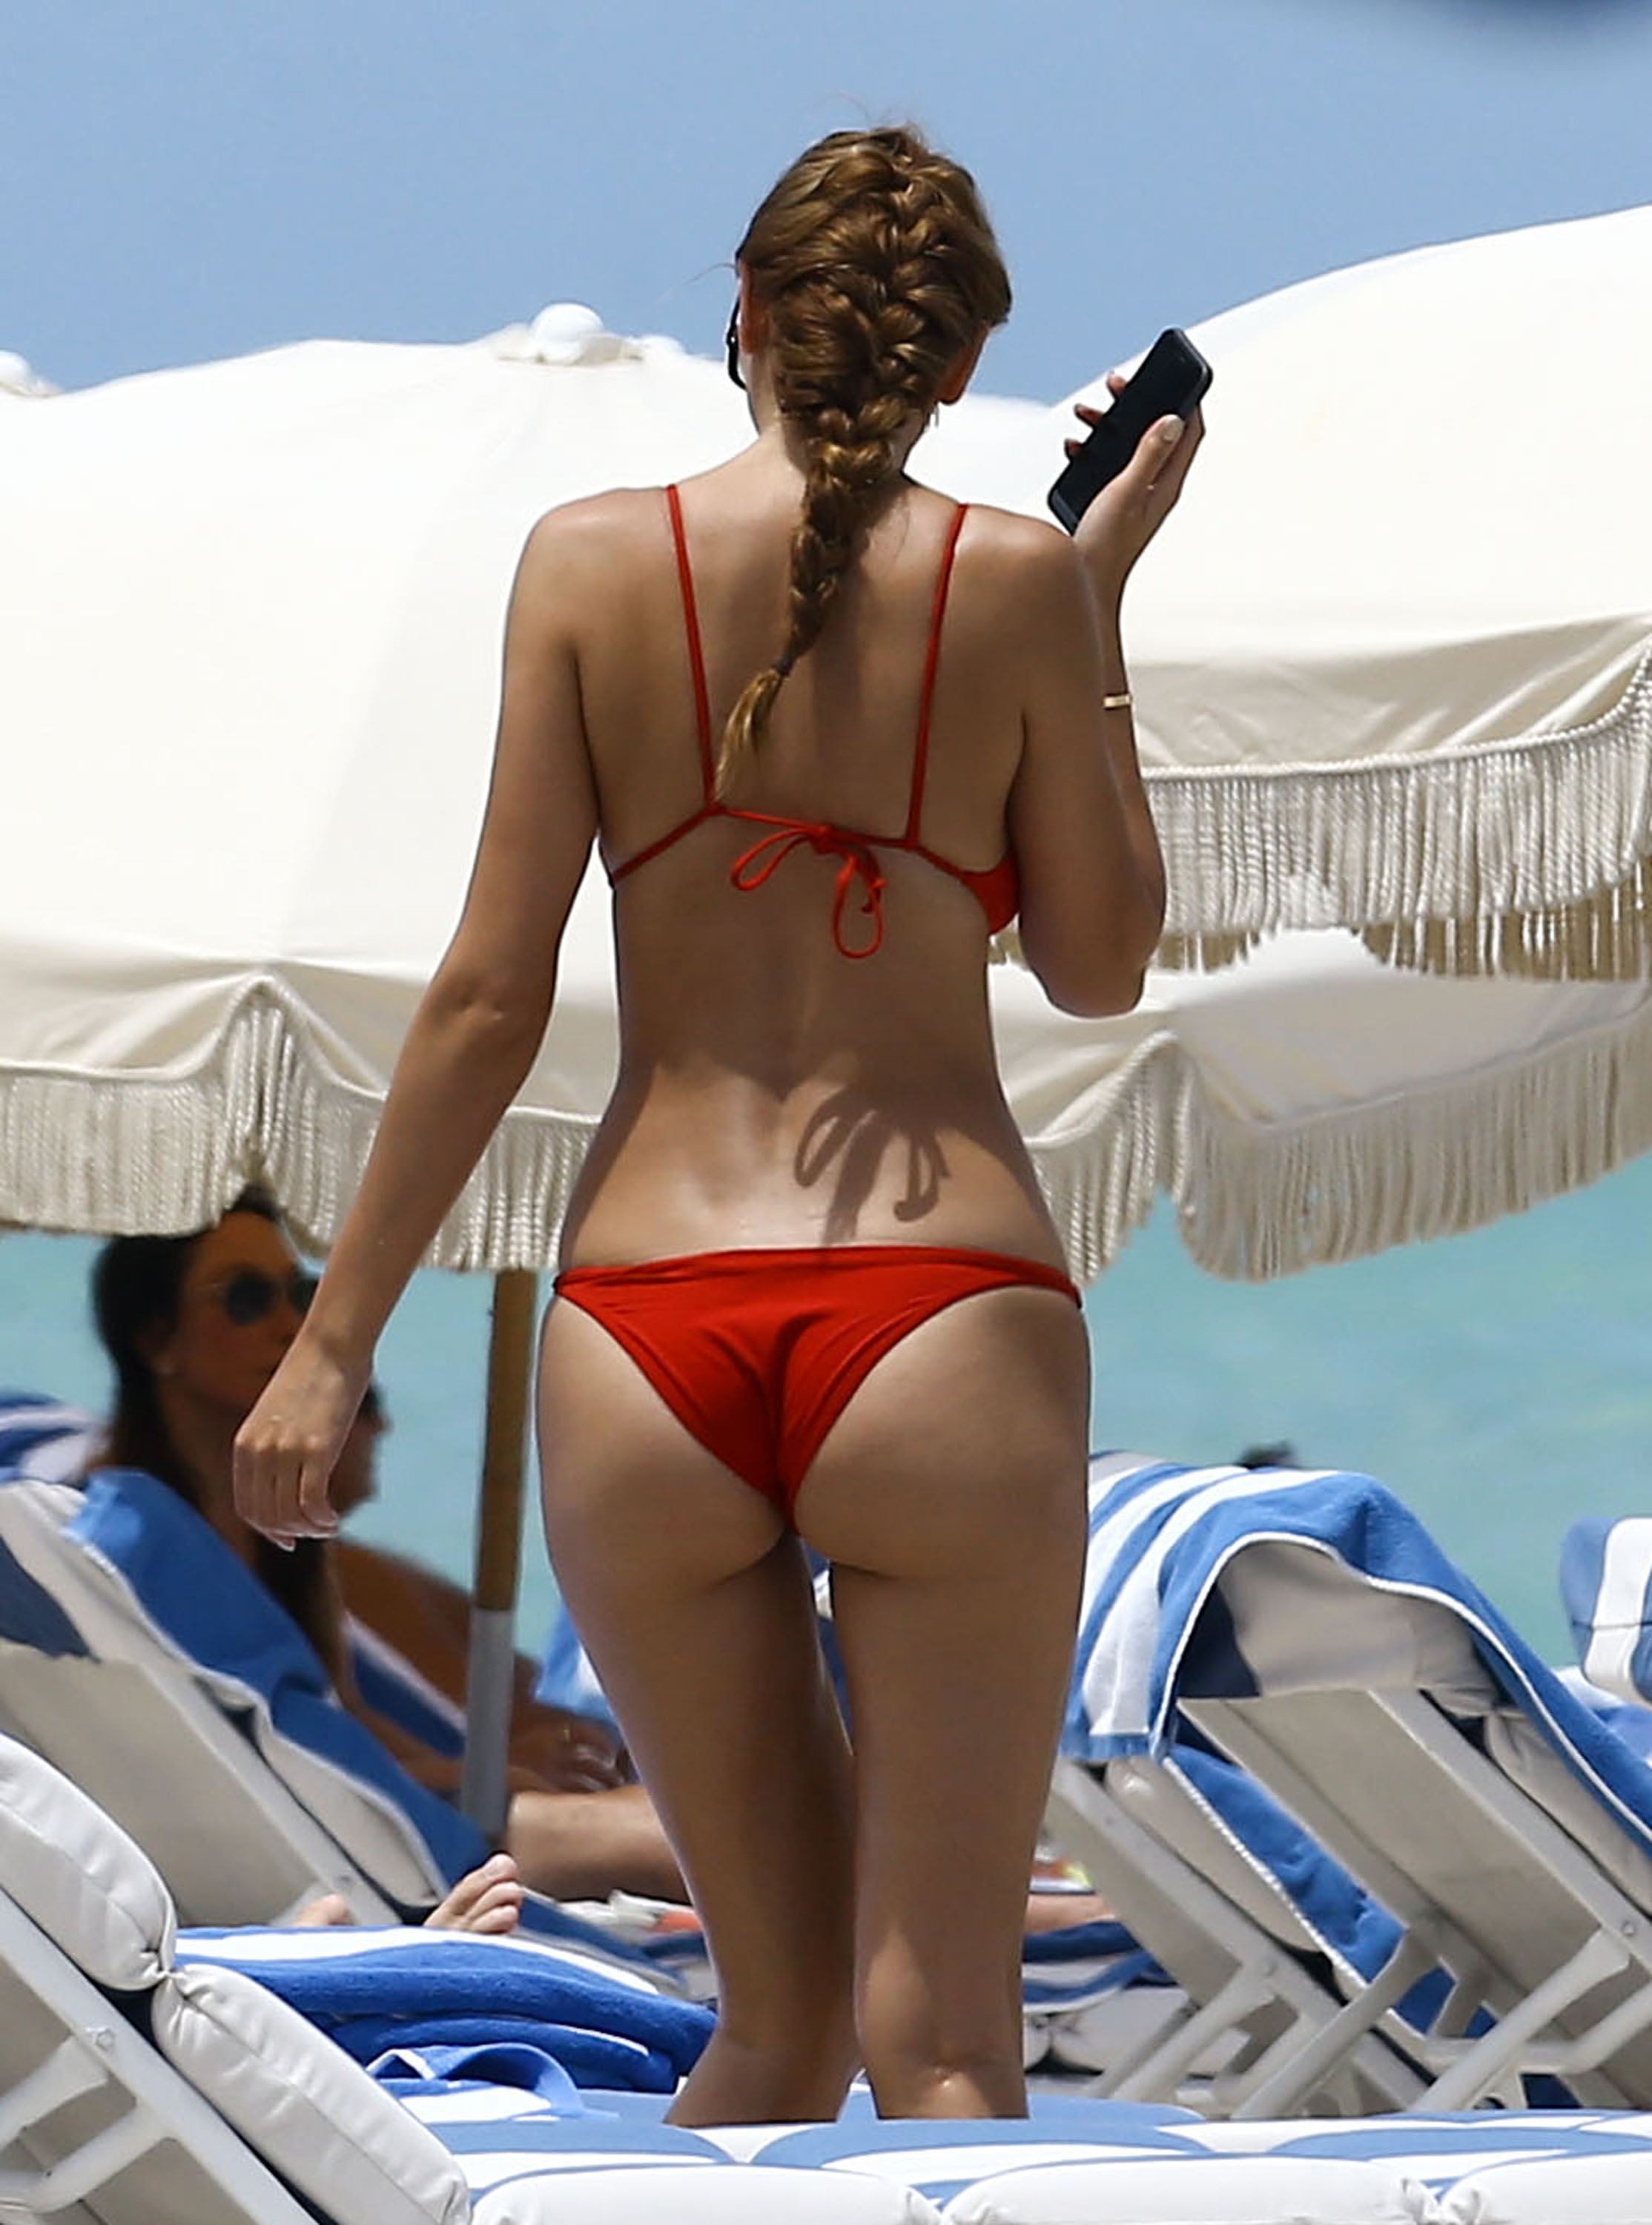 52118754 Romanian socialite Ramona Gabor enjoys a day on the beach in Miami, Florida on July 11, 2016. Ramona showed off her toned body in a red bikini. FameFlynet, Inc - Beverly Hills, CA, USA - +1 (310) 505-9876